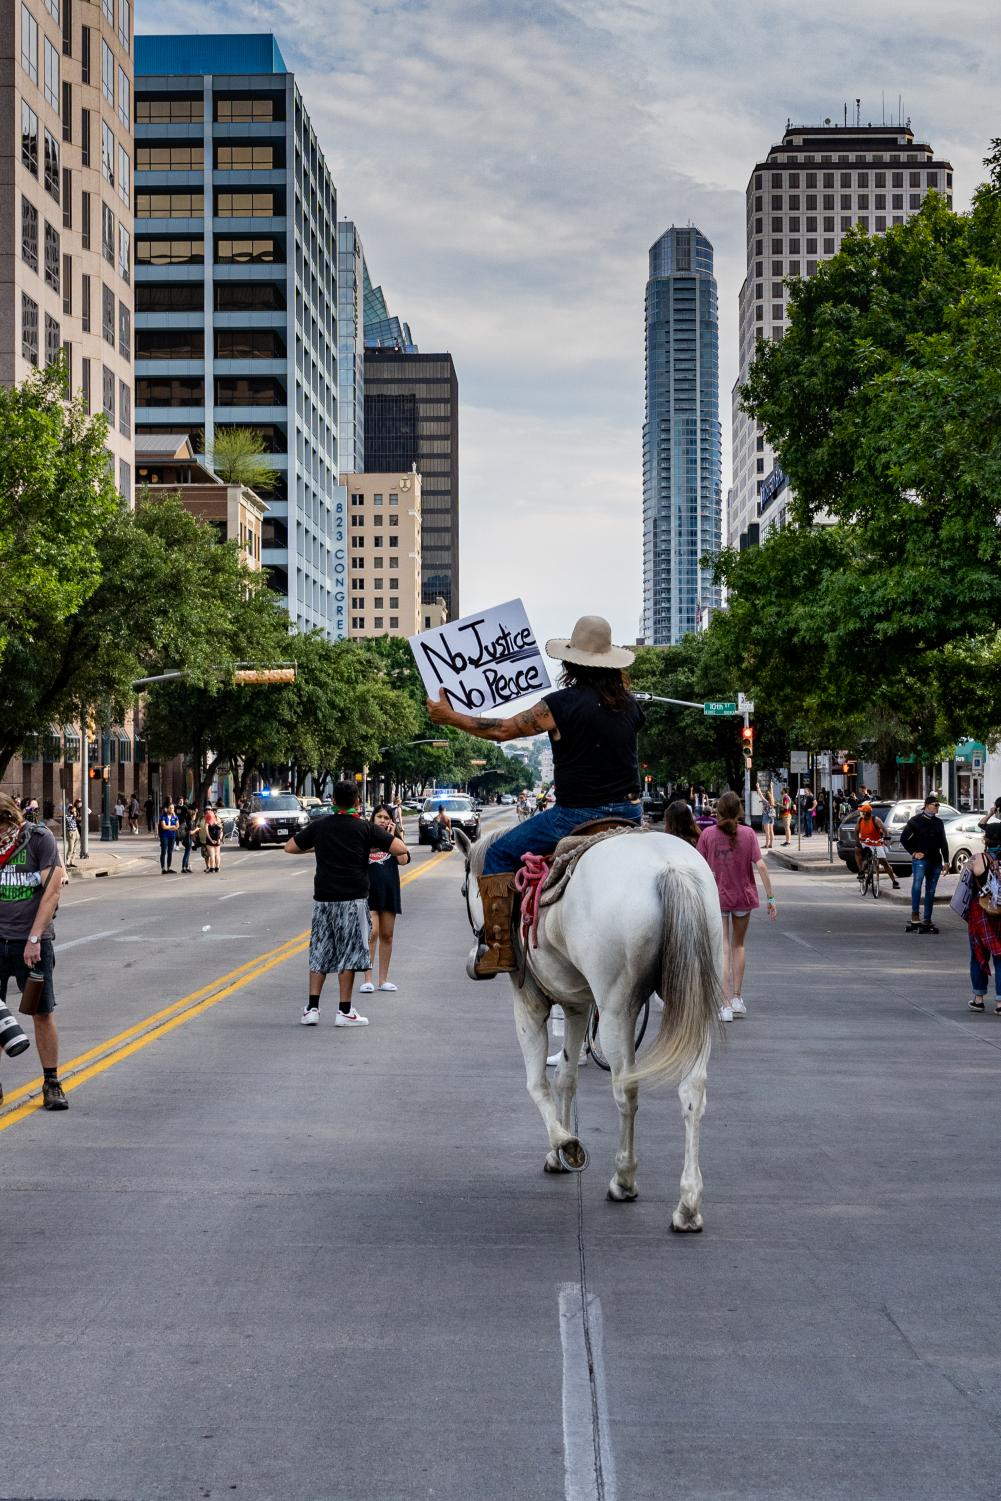 Protesters gather in Austin to fight against police brutality and racial injustice. Demonstrations like this have taken place in all 50 states and outside of the U.S. in the past week.